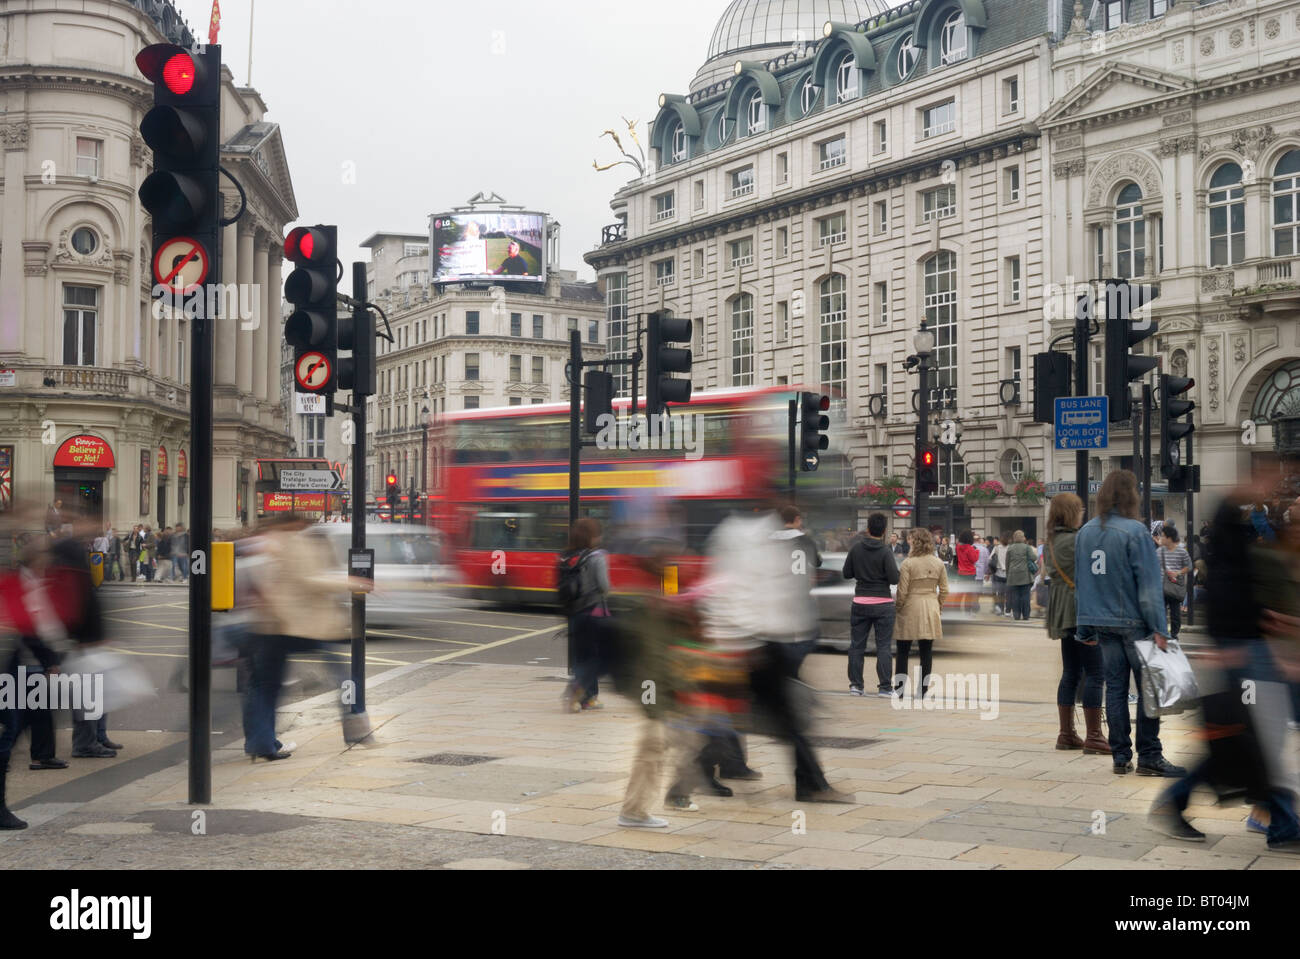 Pedestrians and shoppers in Picadilly circus, London, England, UK - Stock Image